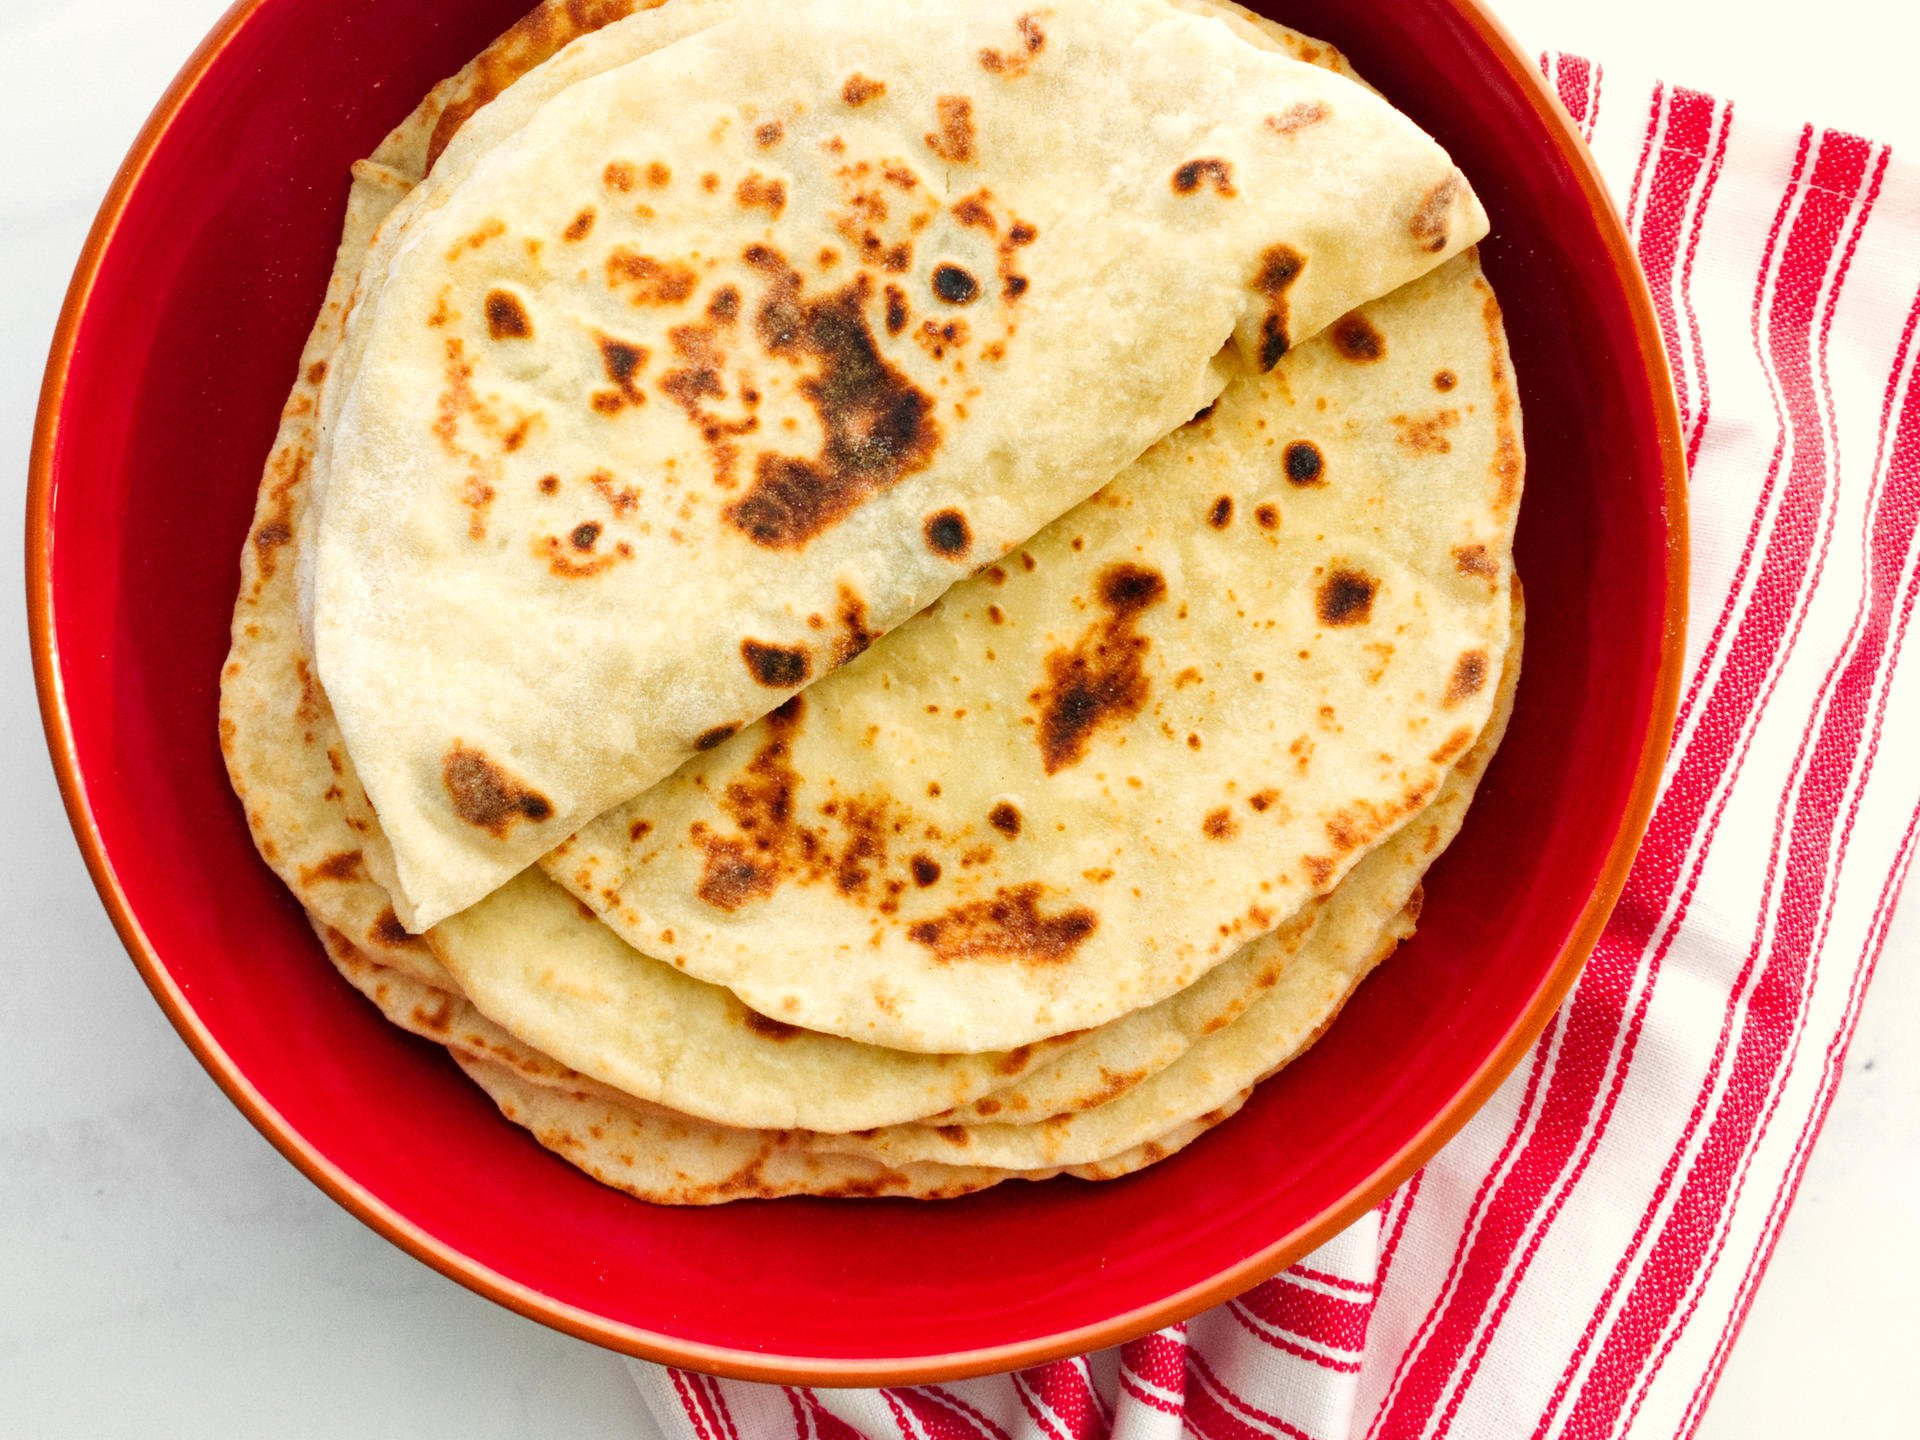 A stack of flatbreads on a red plate